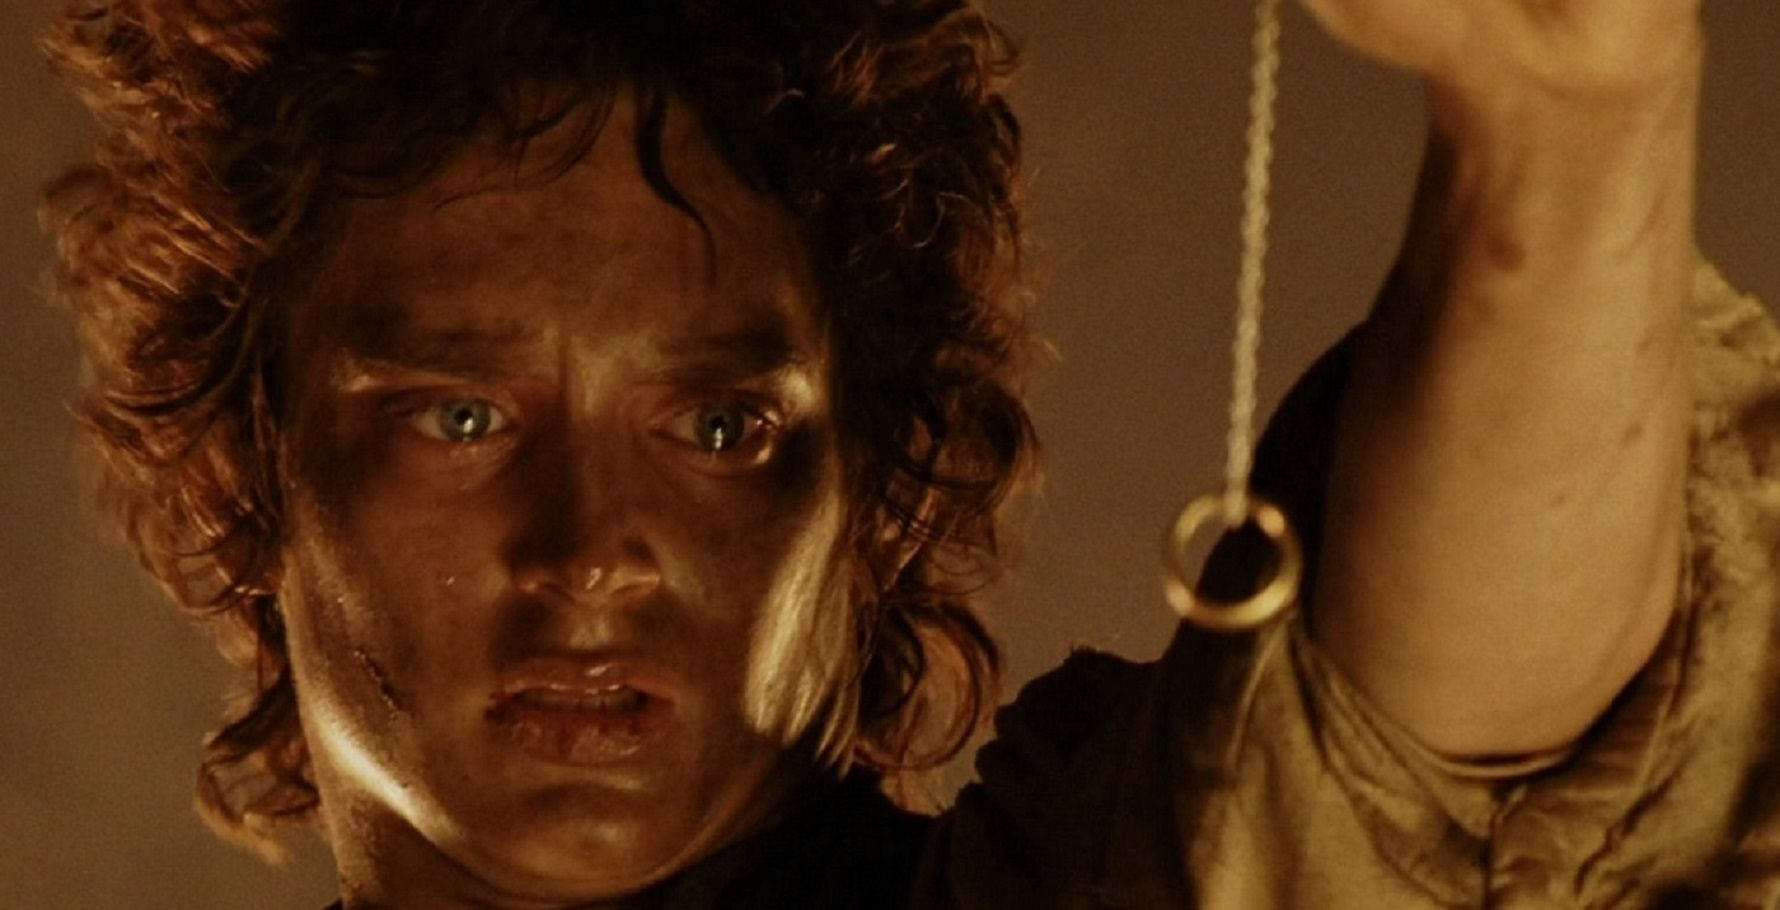 The Lord of the Rings: Elijah Wood (Frodo) plans to show the trilogy to his son